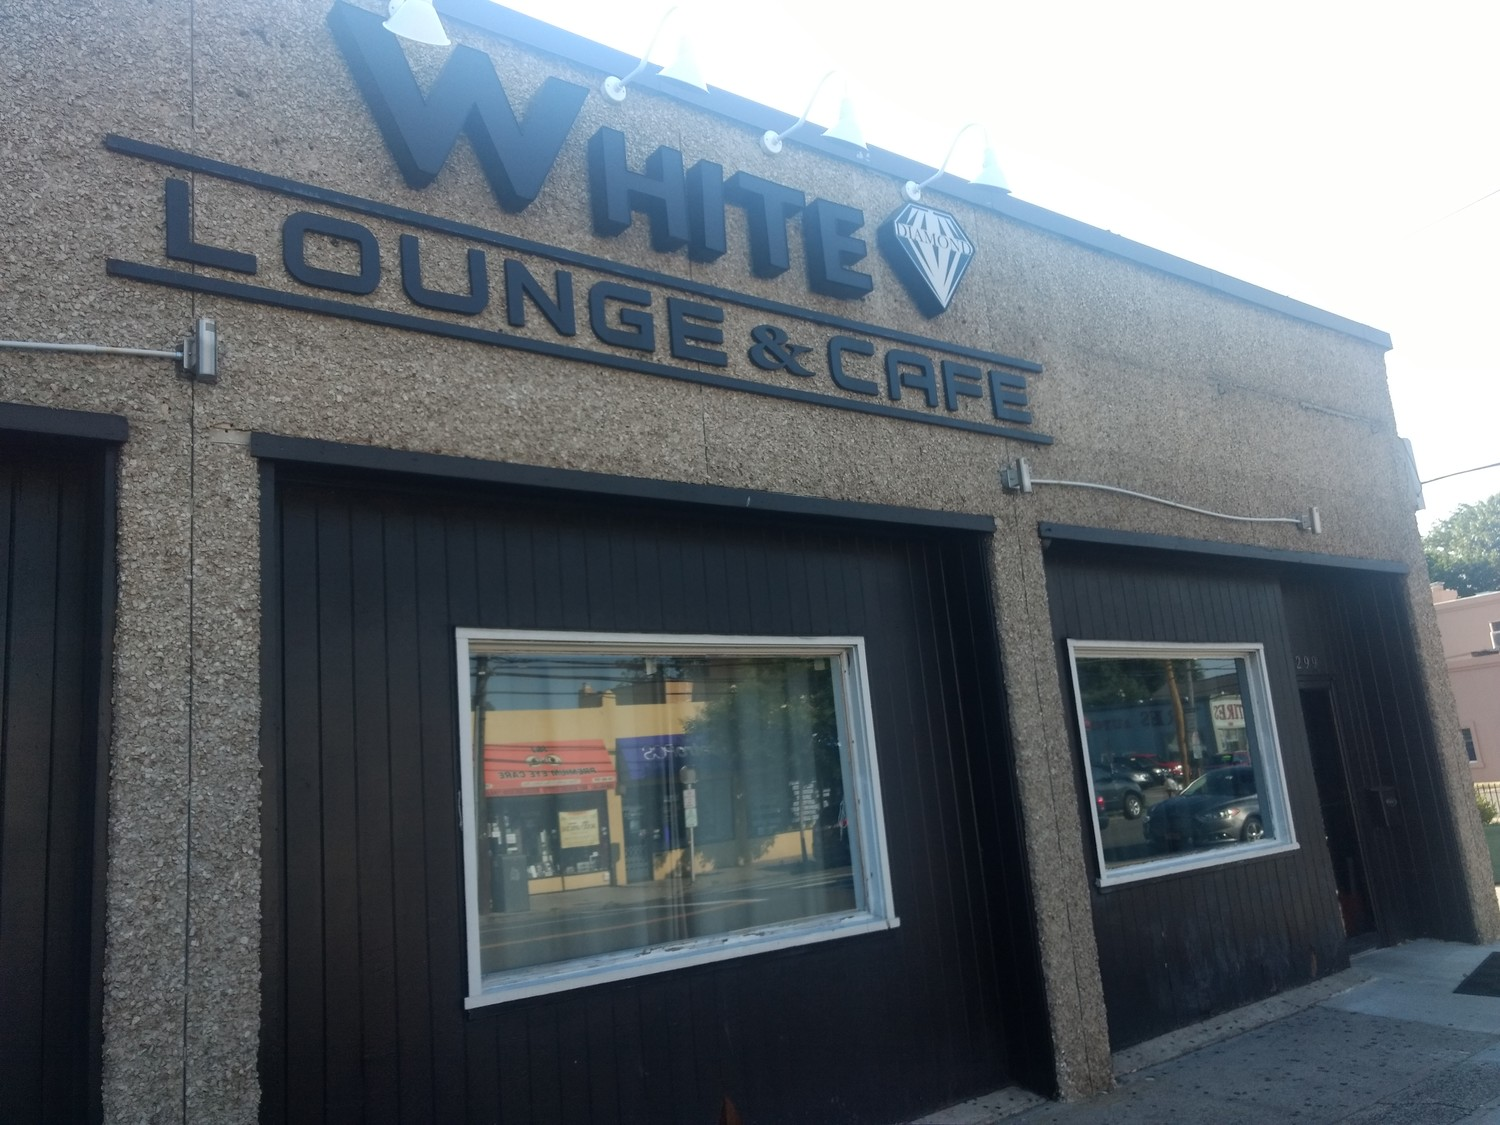 The White Diamond Lounge and Café, on Grand Avenue, was stripped of its liquor license on July 11.